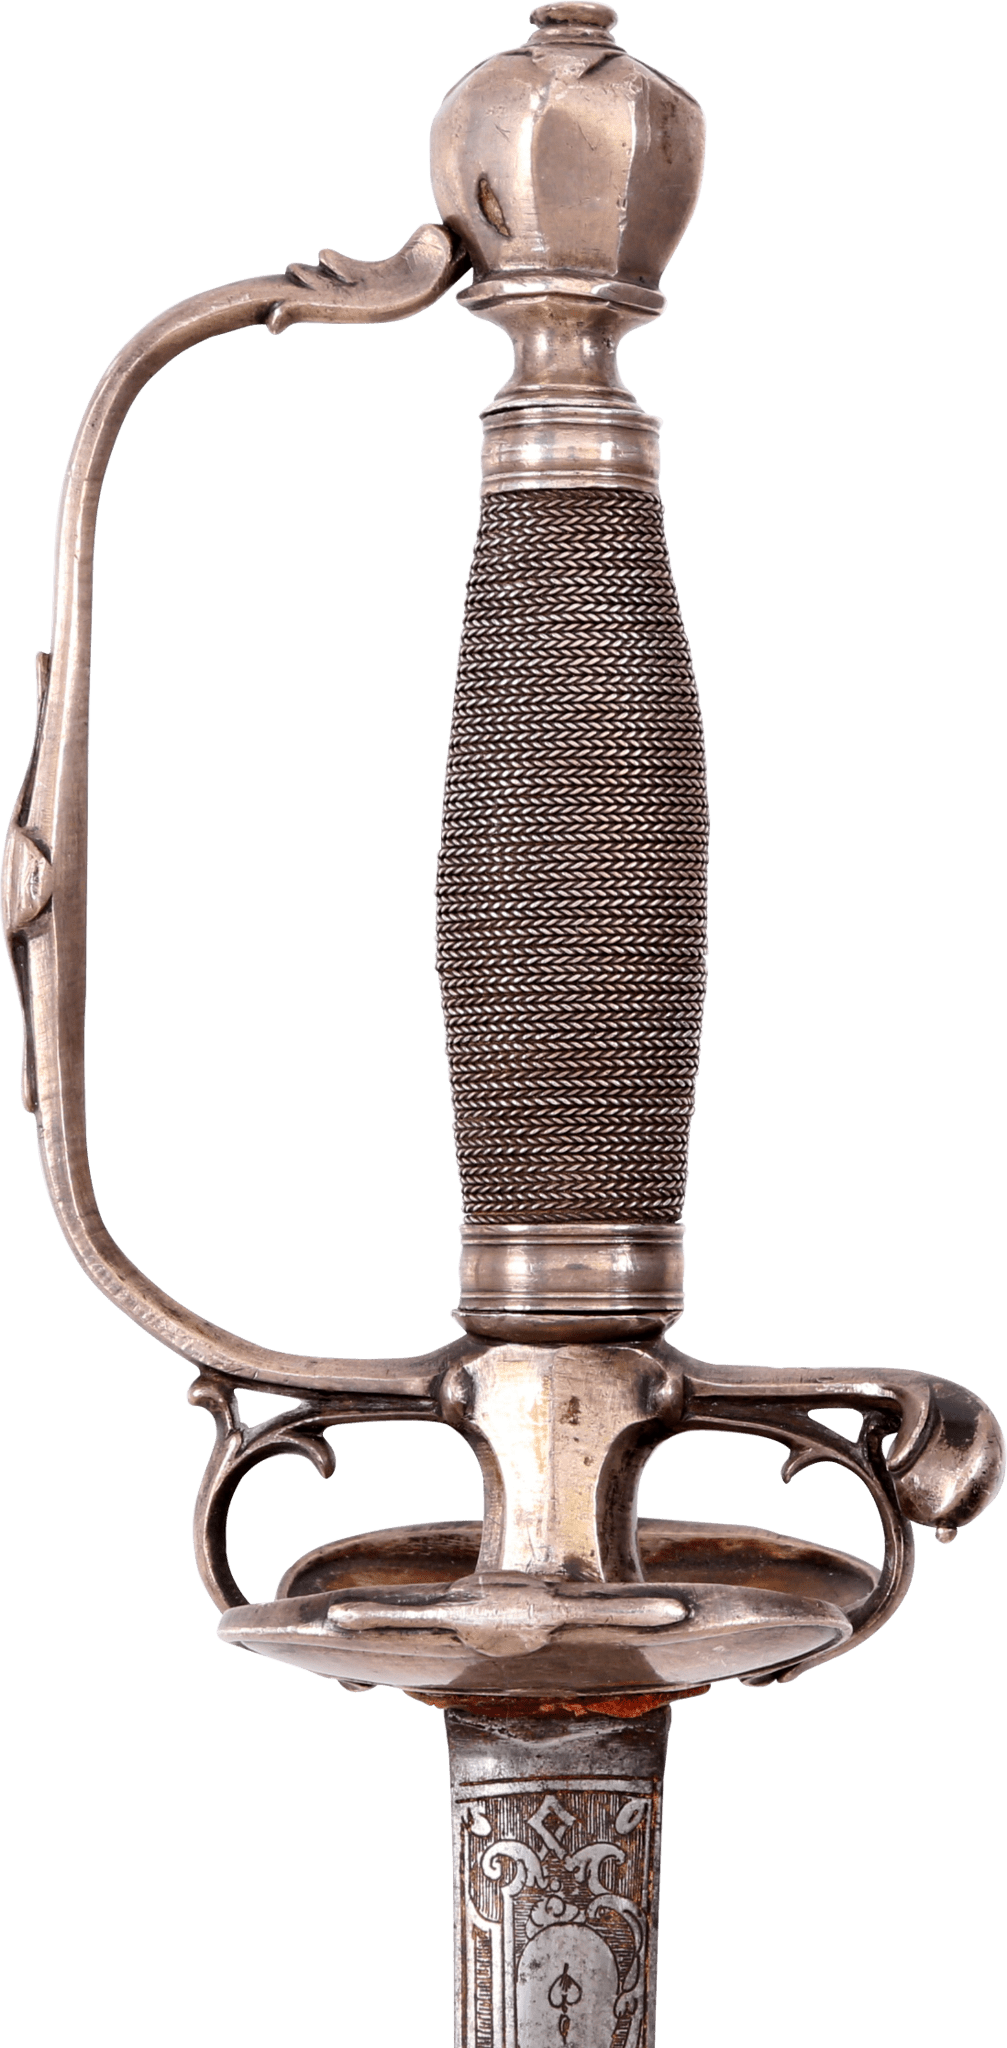 A FINE FRENCH SILVER HILTED SMALLSWORD C.1720 - Fagan Arms